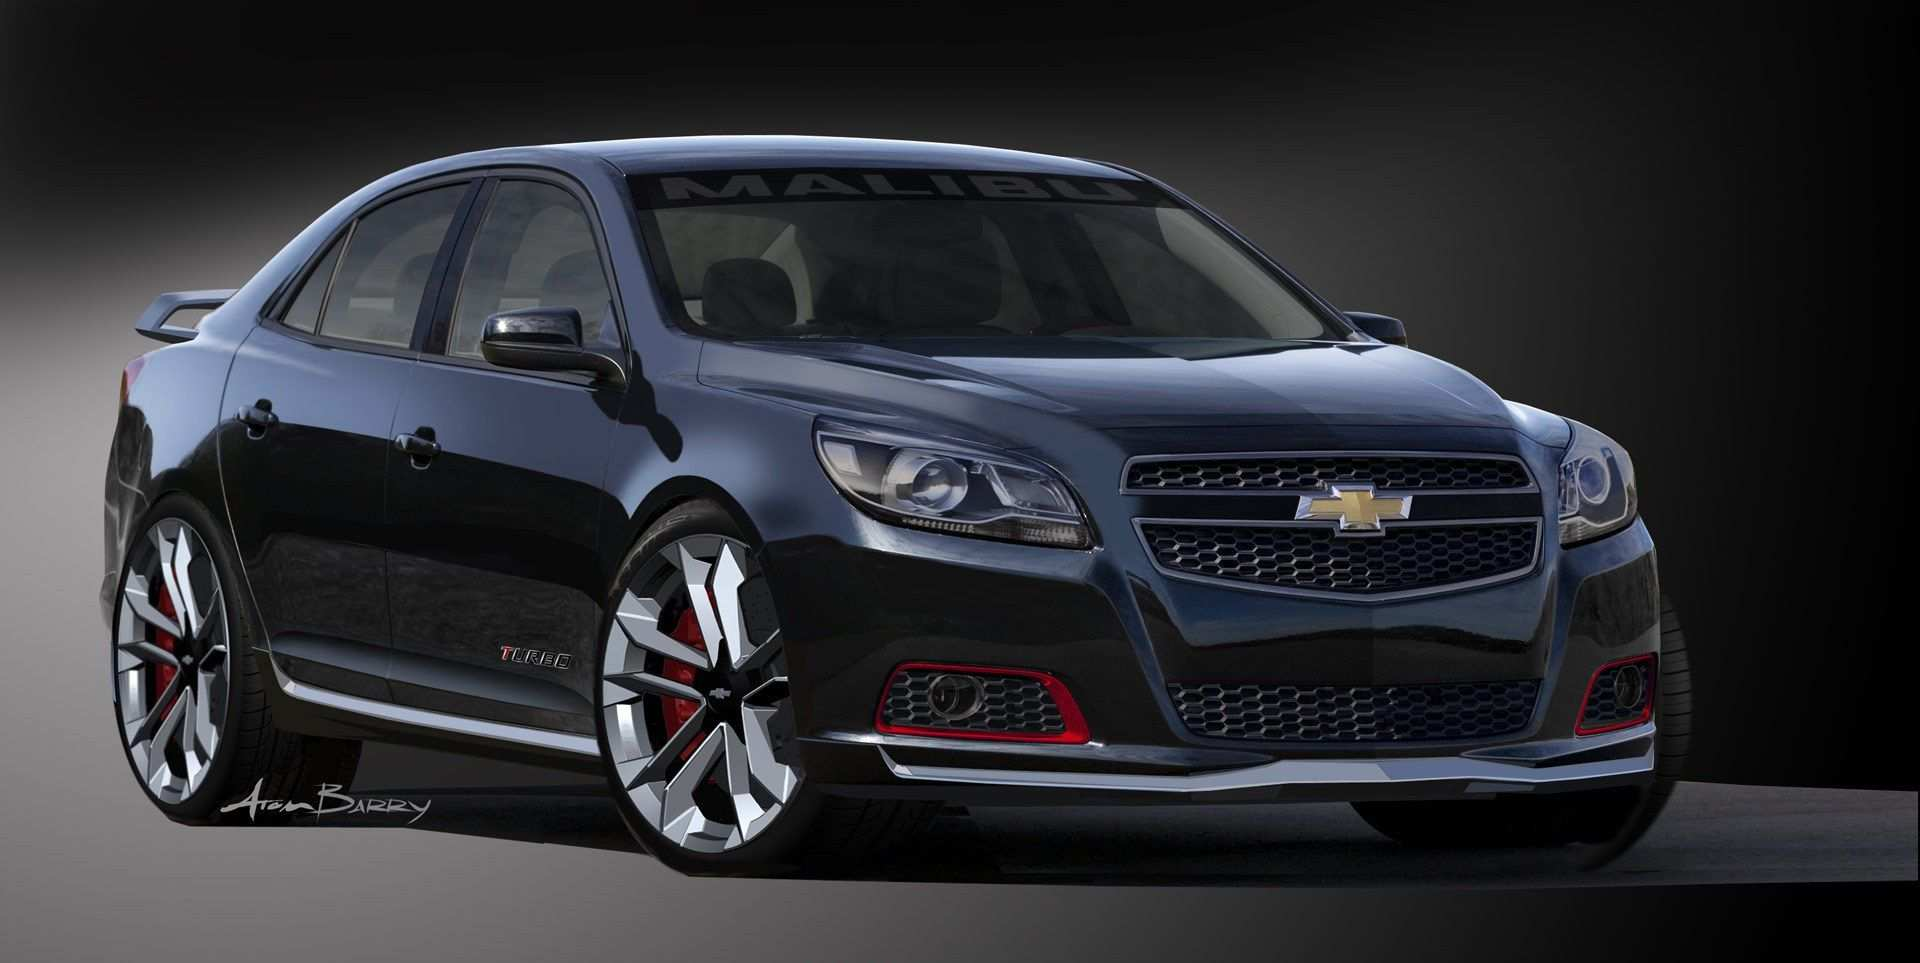 23 All New 2020 Chevy Malibu Picture